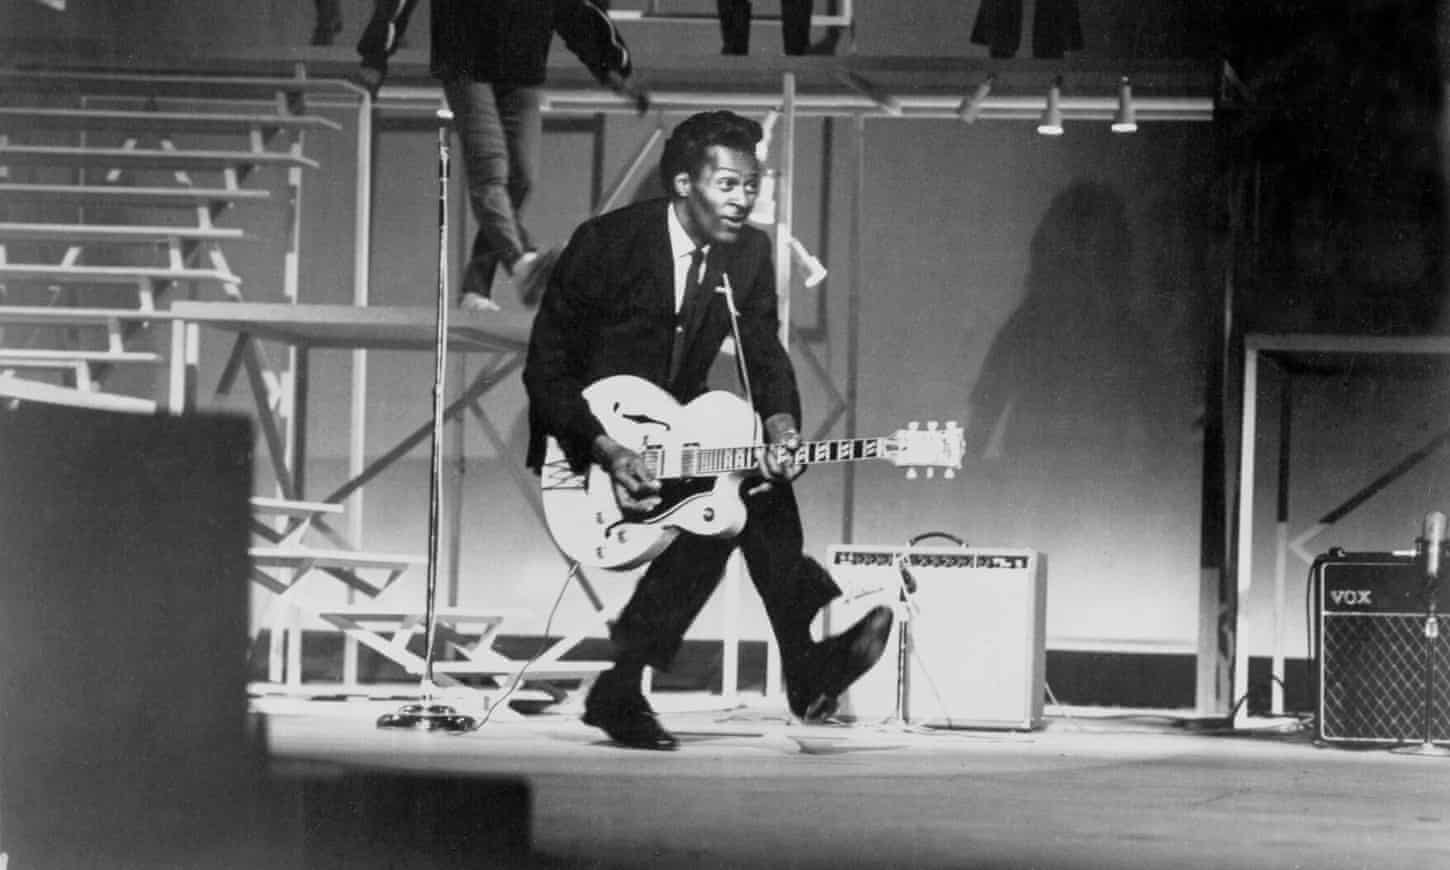 TV tonight: the father of rock'n'roll Chuck Berry